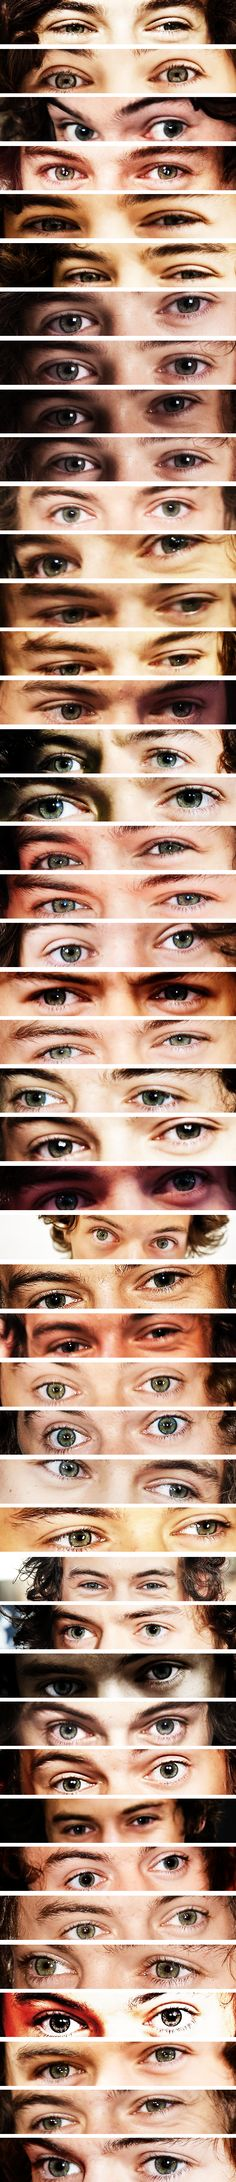 WHO MADE THIS MASTER POST OF HARRY STYLES'S EYES.